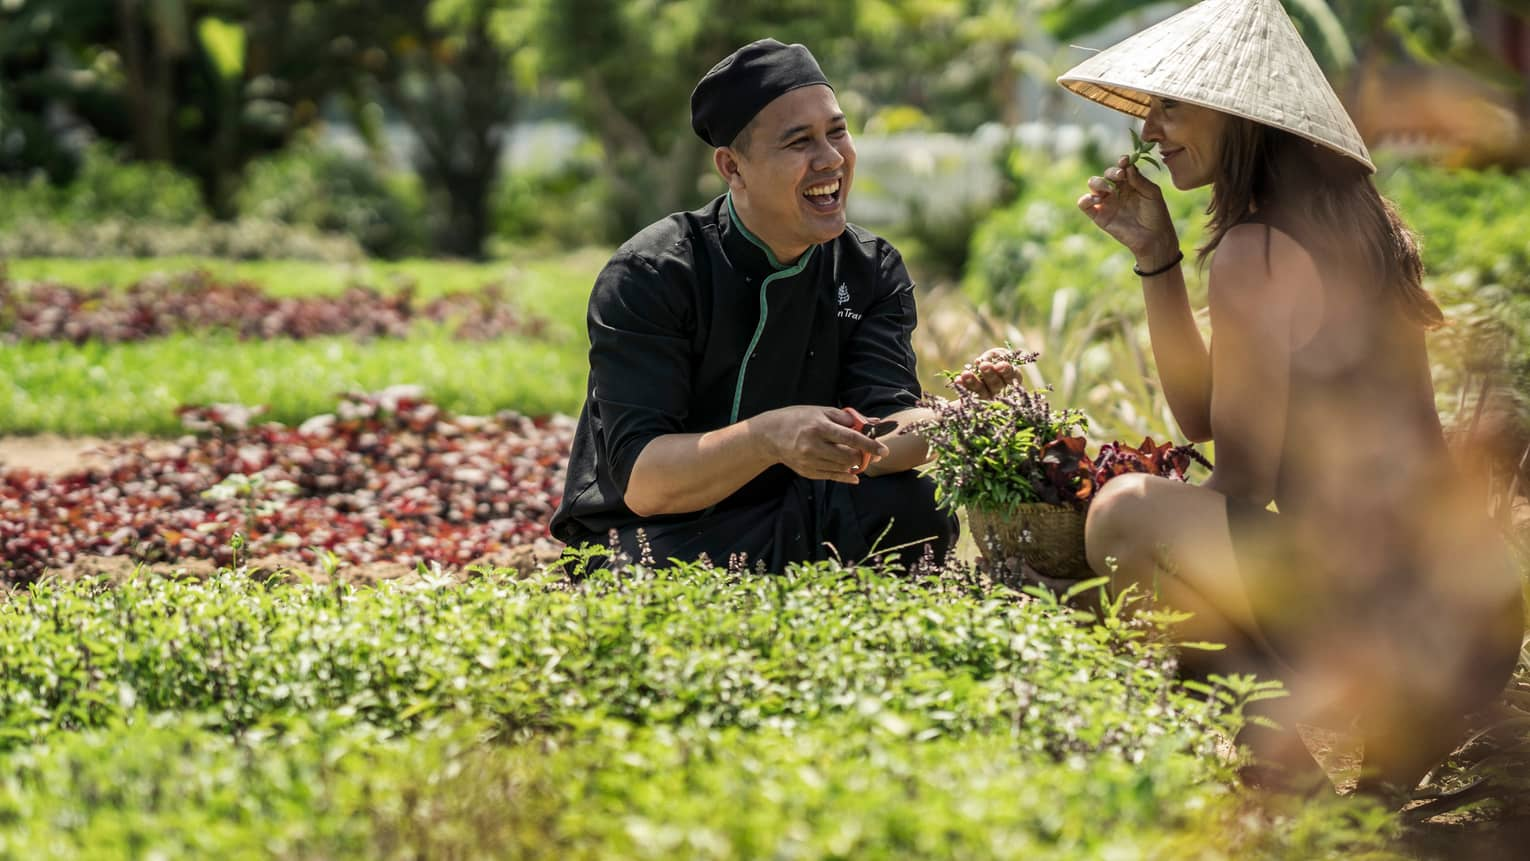 Chef, woman in hat kneel in sunny herb garden